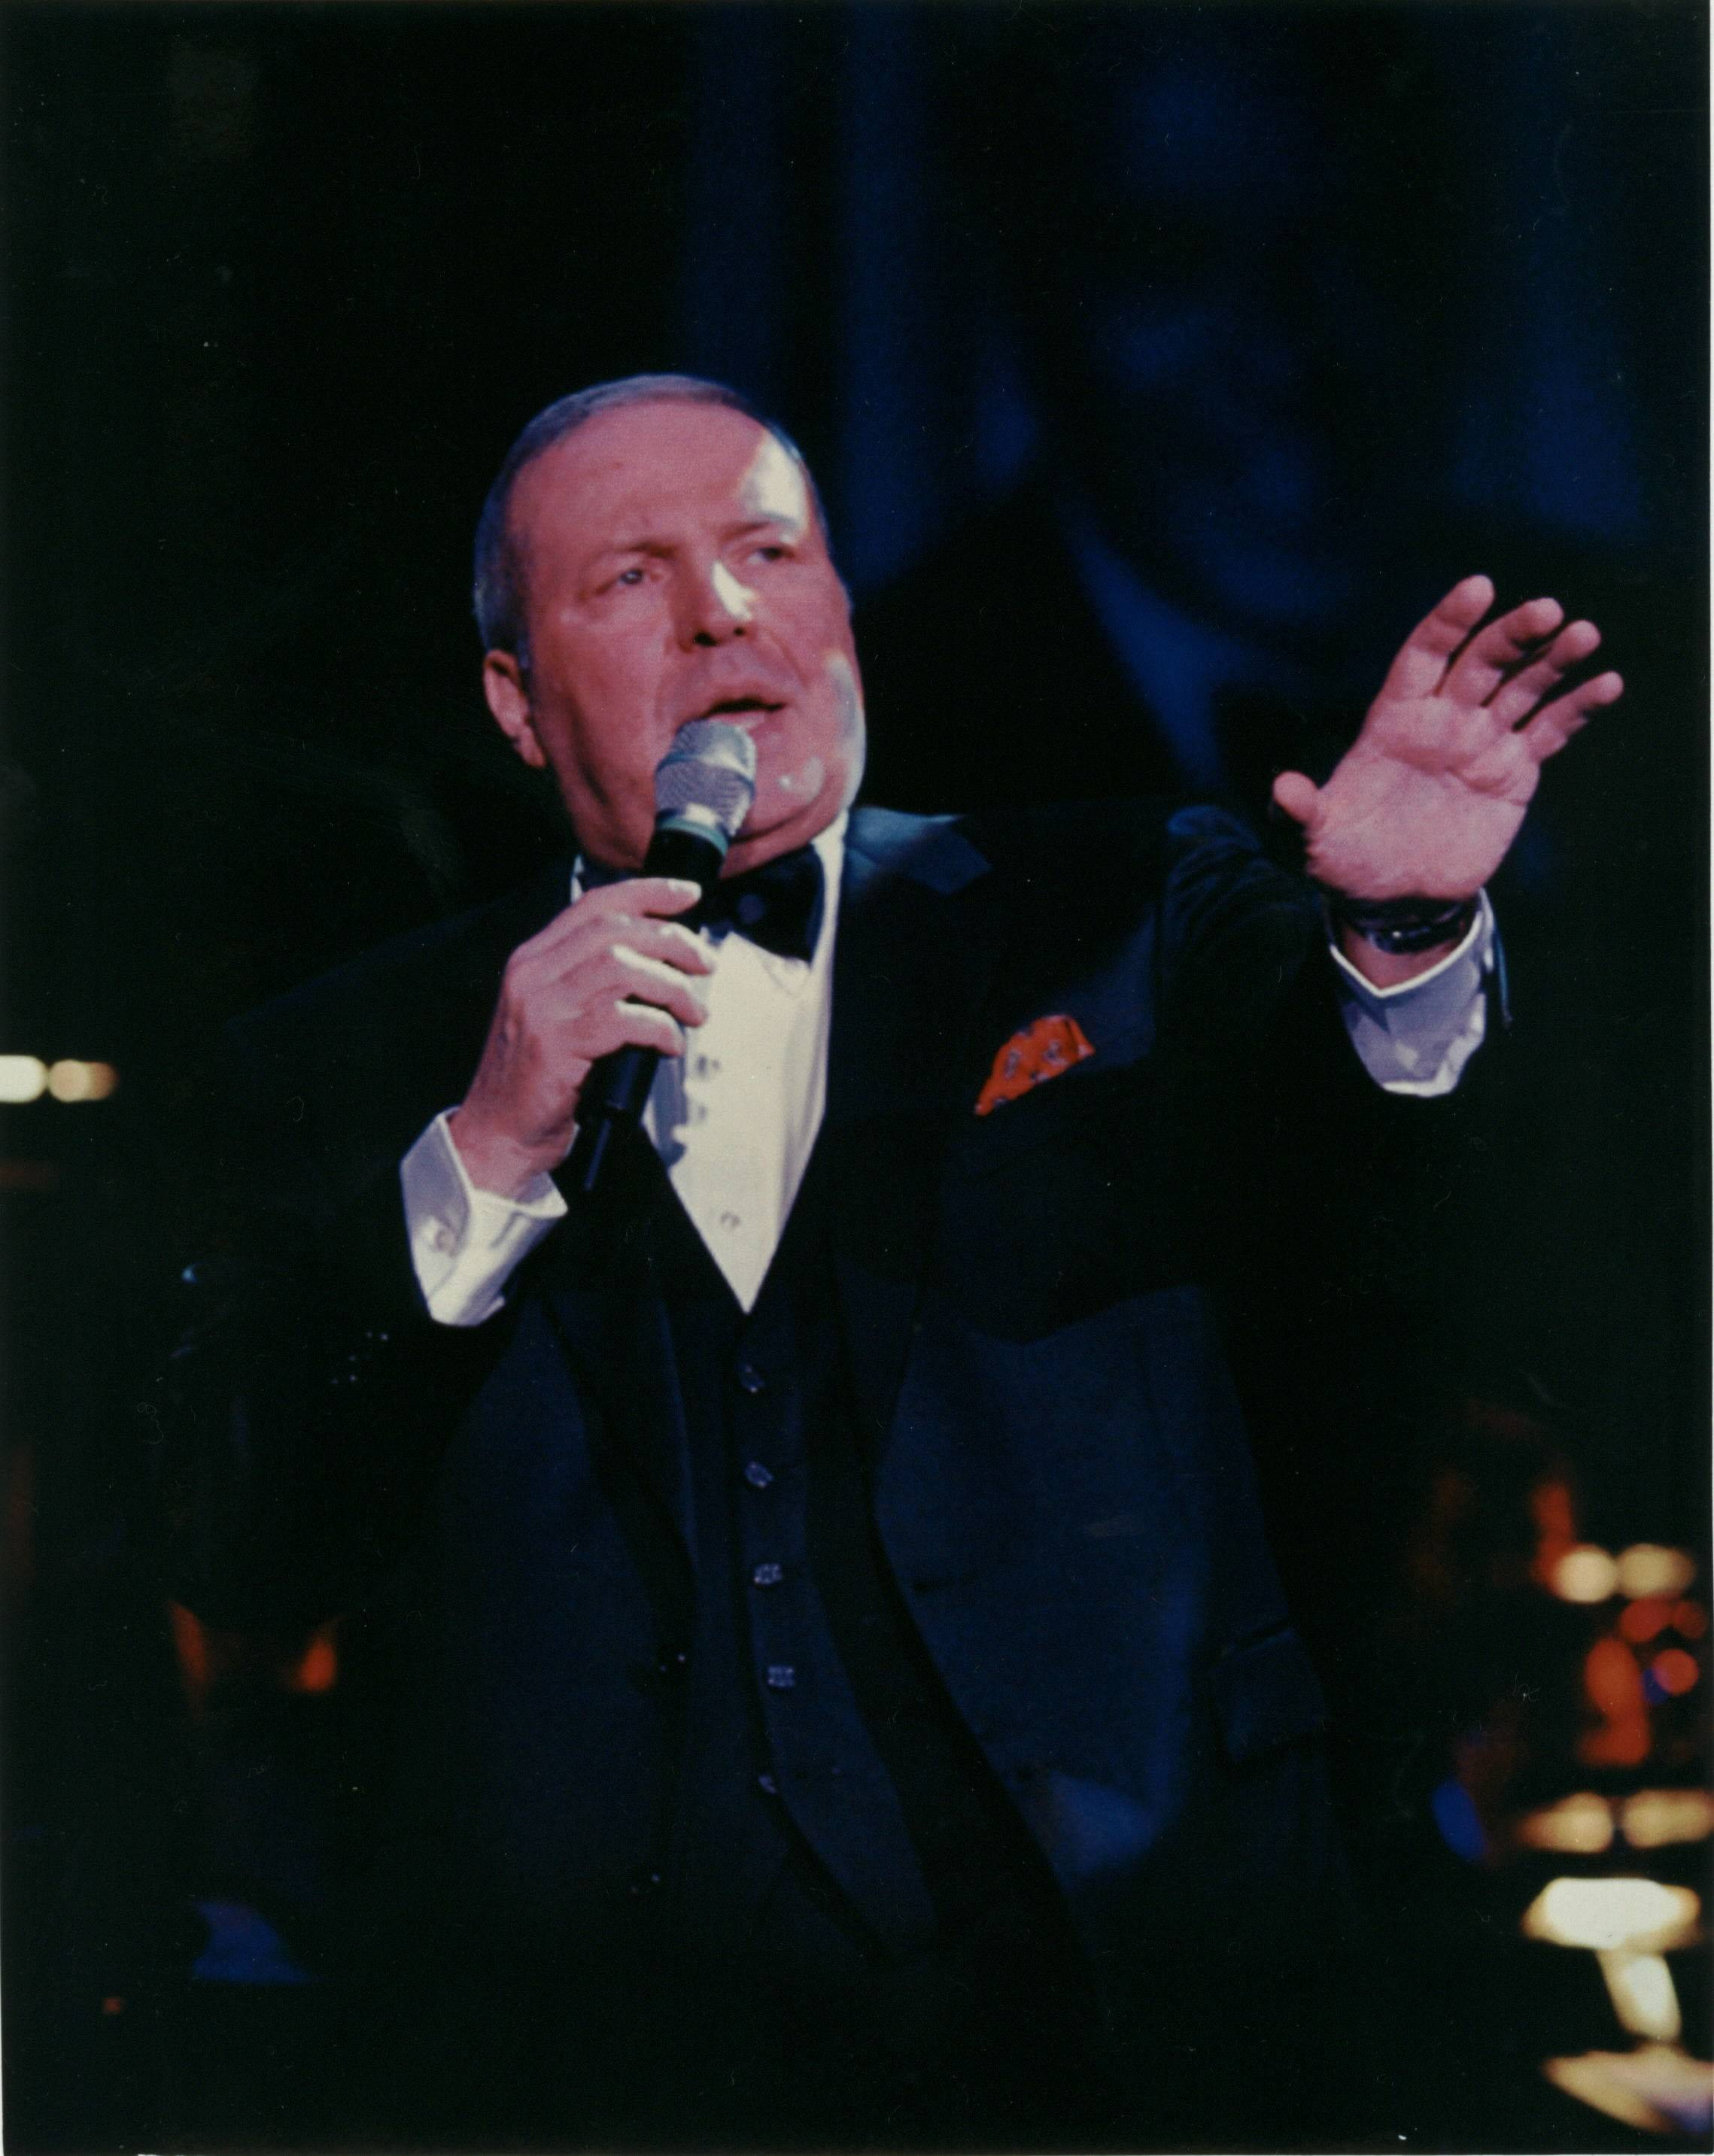 Frank Sinatra Jr. sings during a concert performance. Sinatra Jr., 72, died March 16 in Florida.